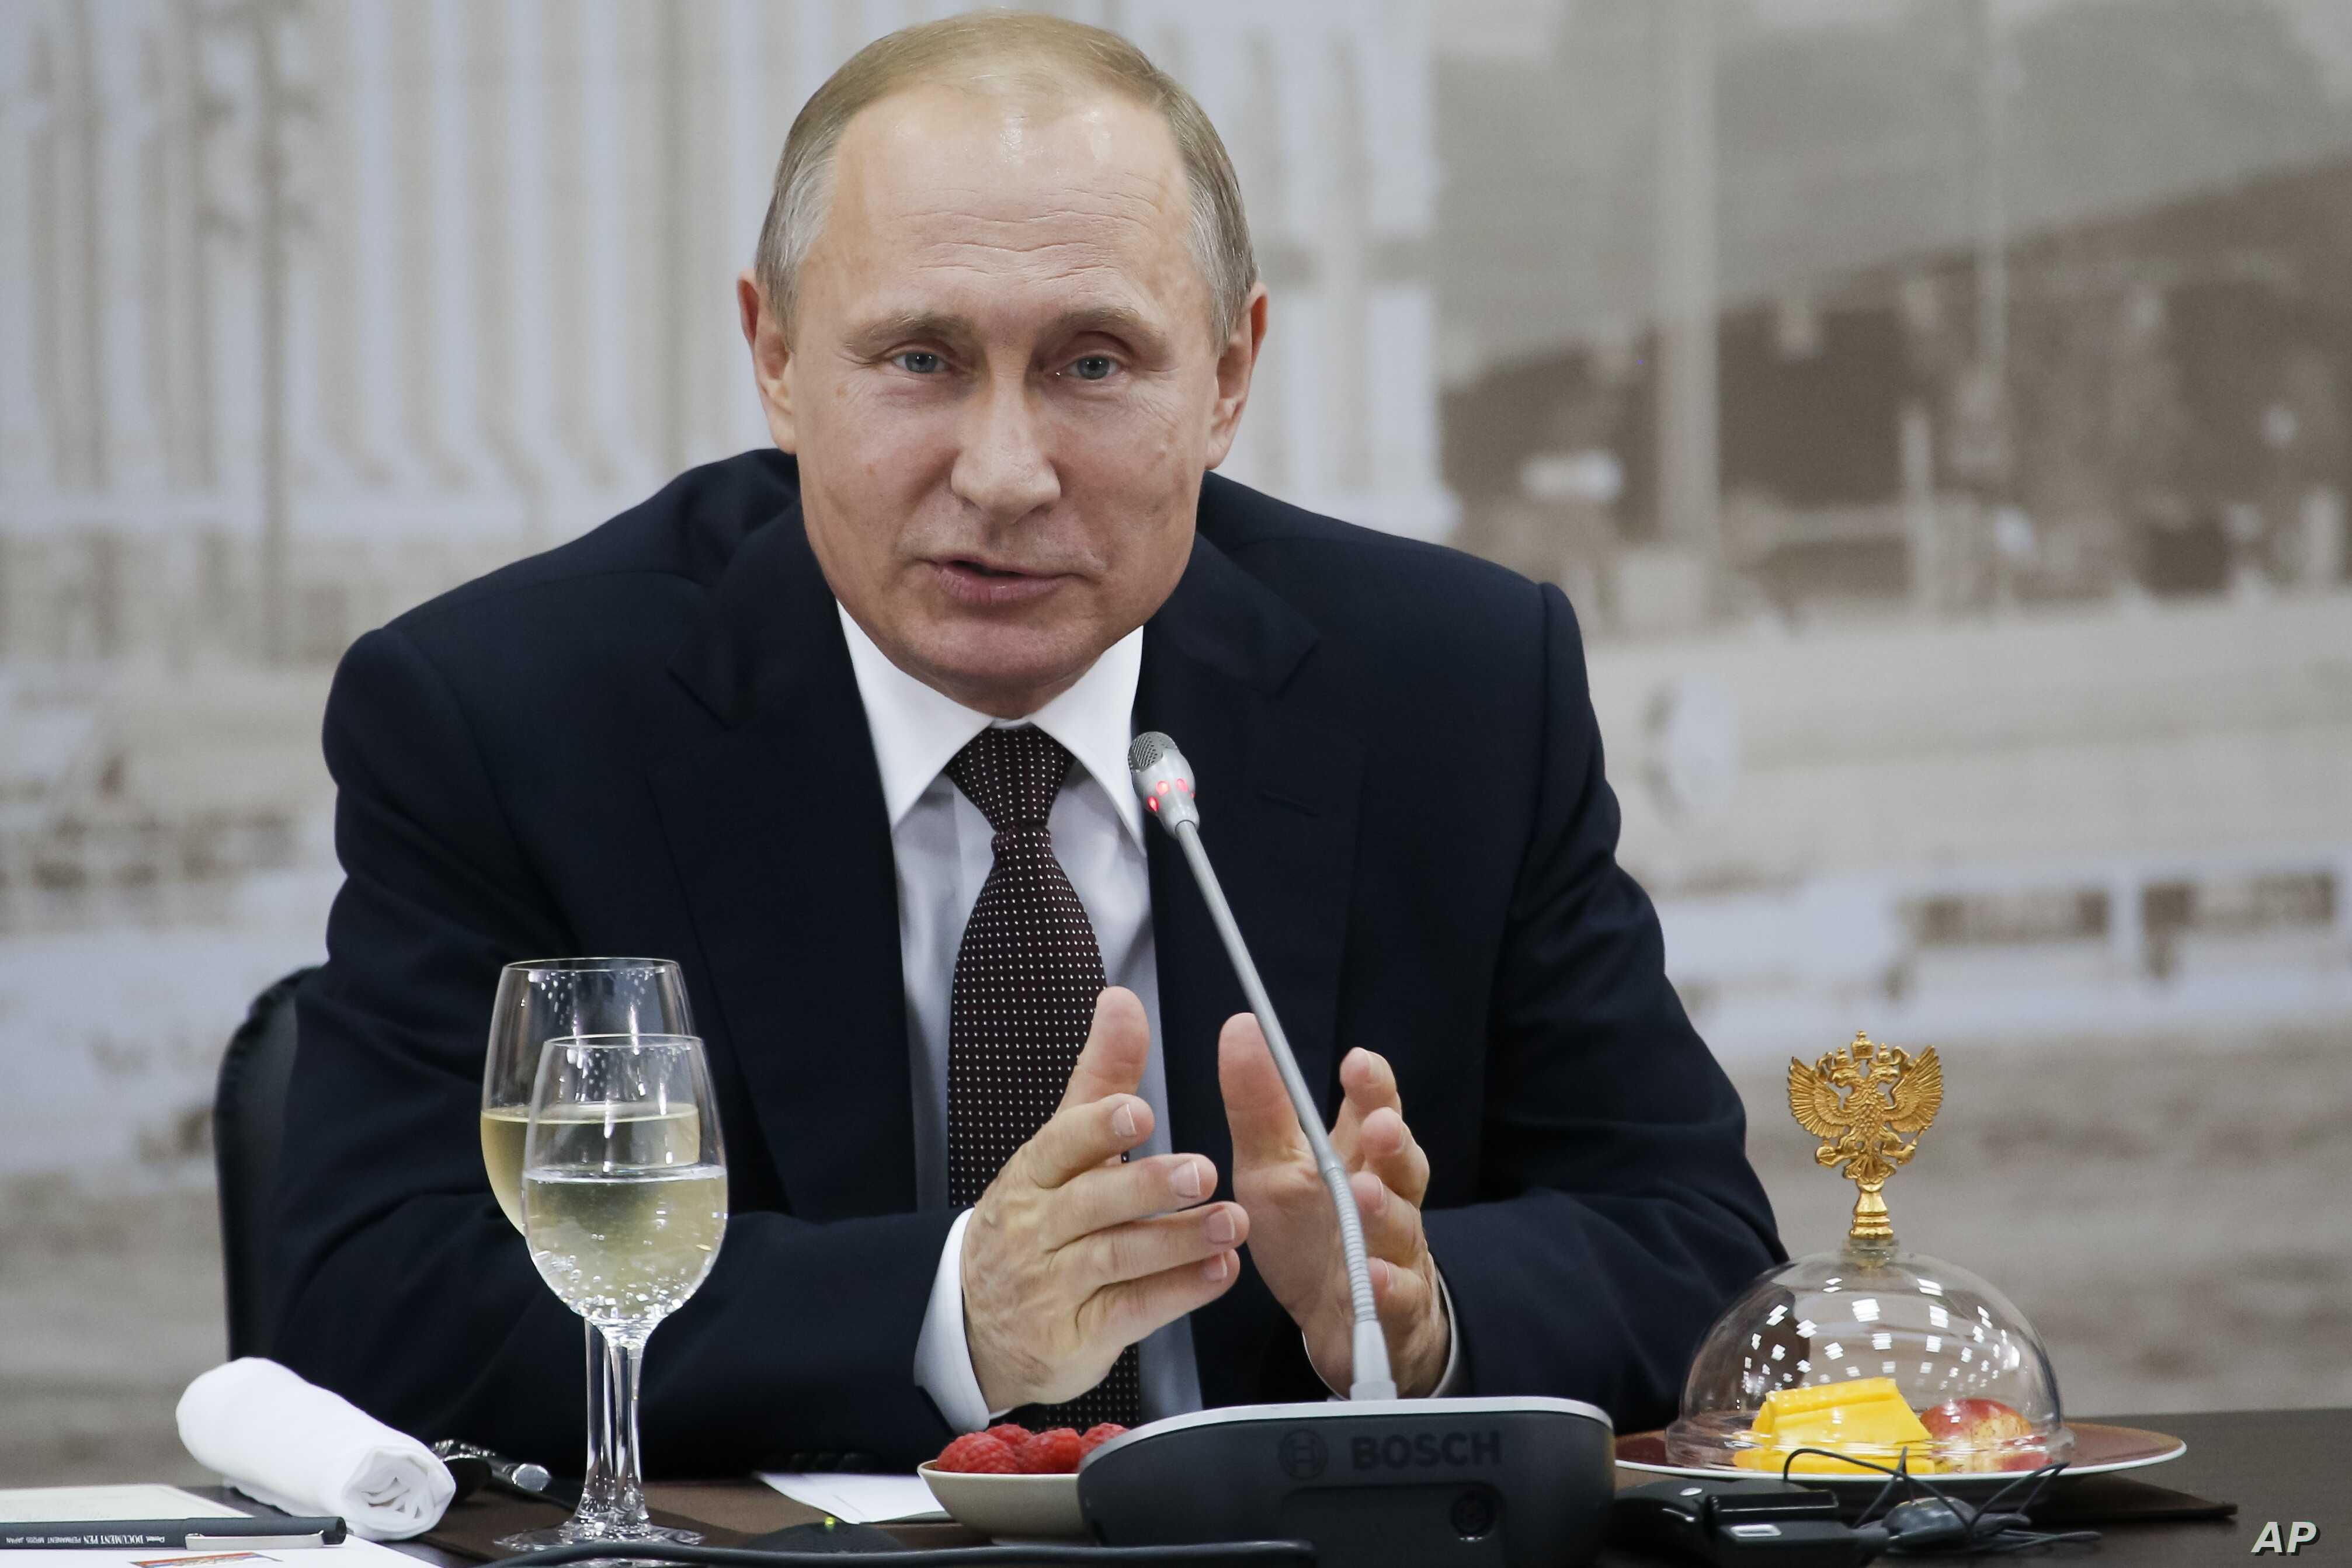 Russian President Vladimir Putin speaks at a meeting with chief executives of international companies at the St. Petersburg International Economic Forum in St. Petersburg, June 17, 2016.